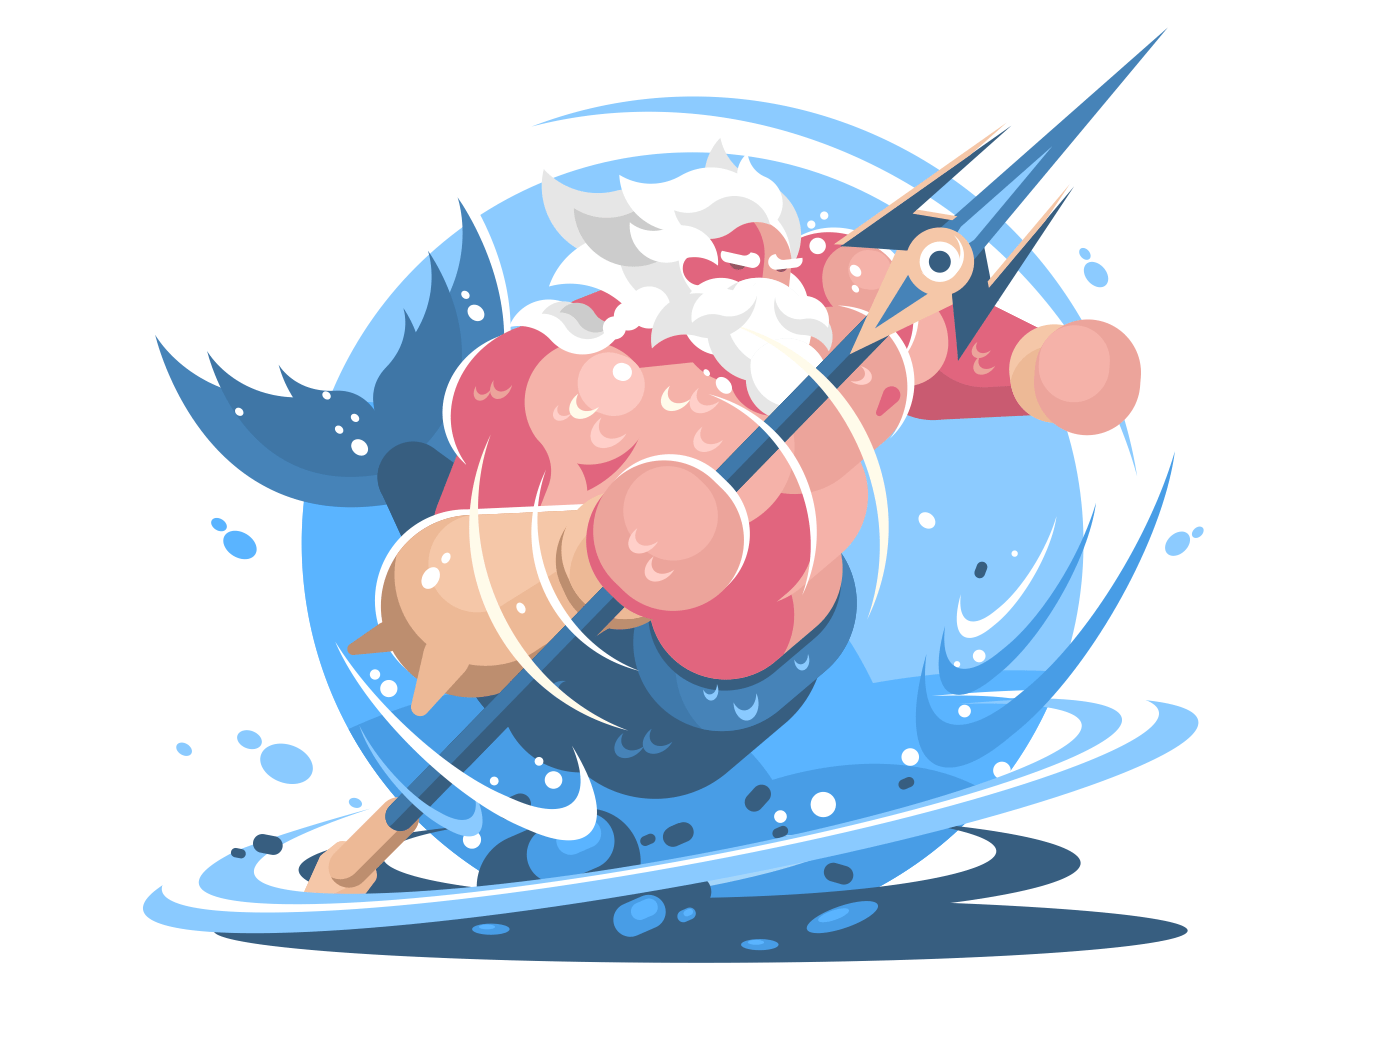 Character poseidon with trident. God of sea and ocean. Vector illustration